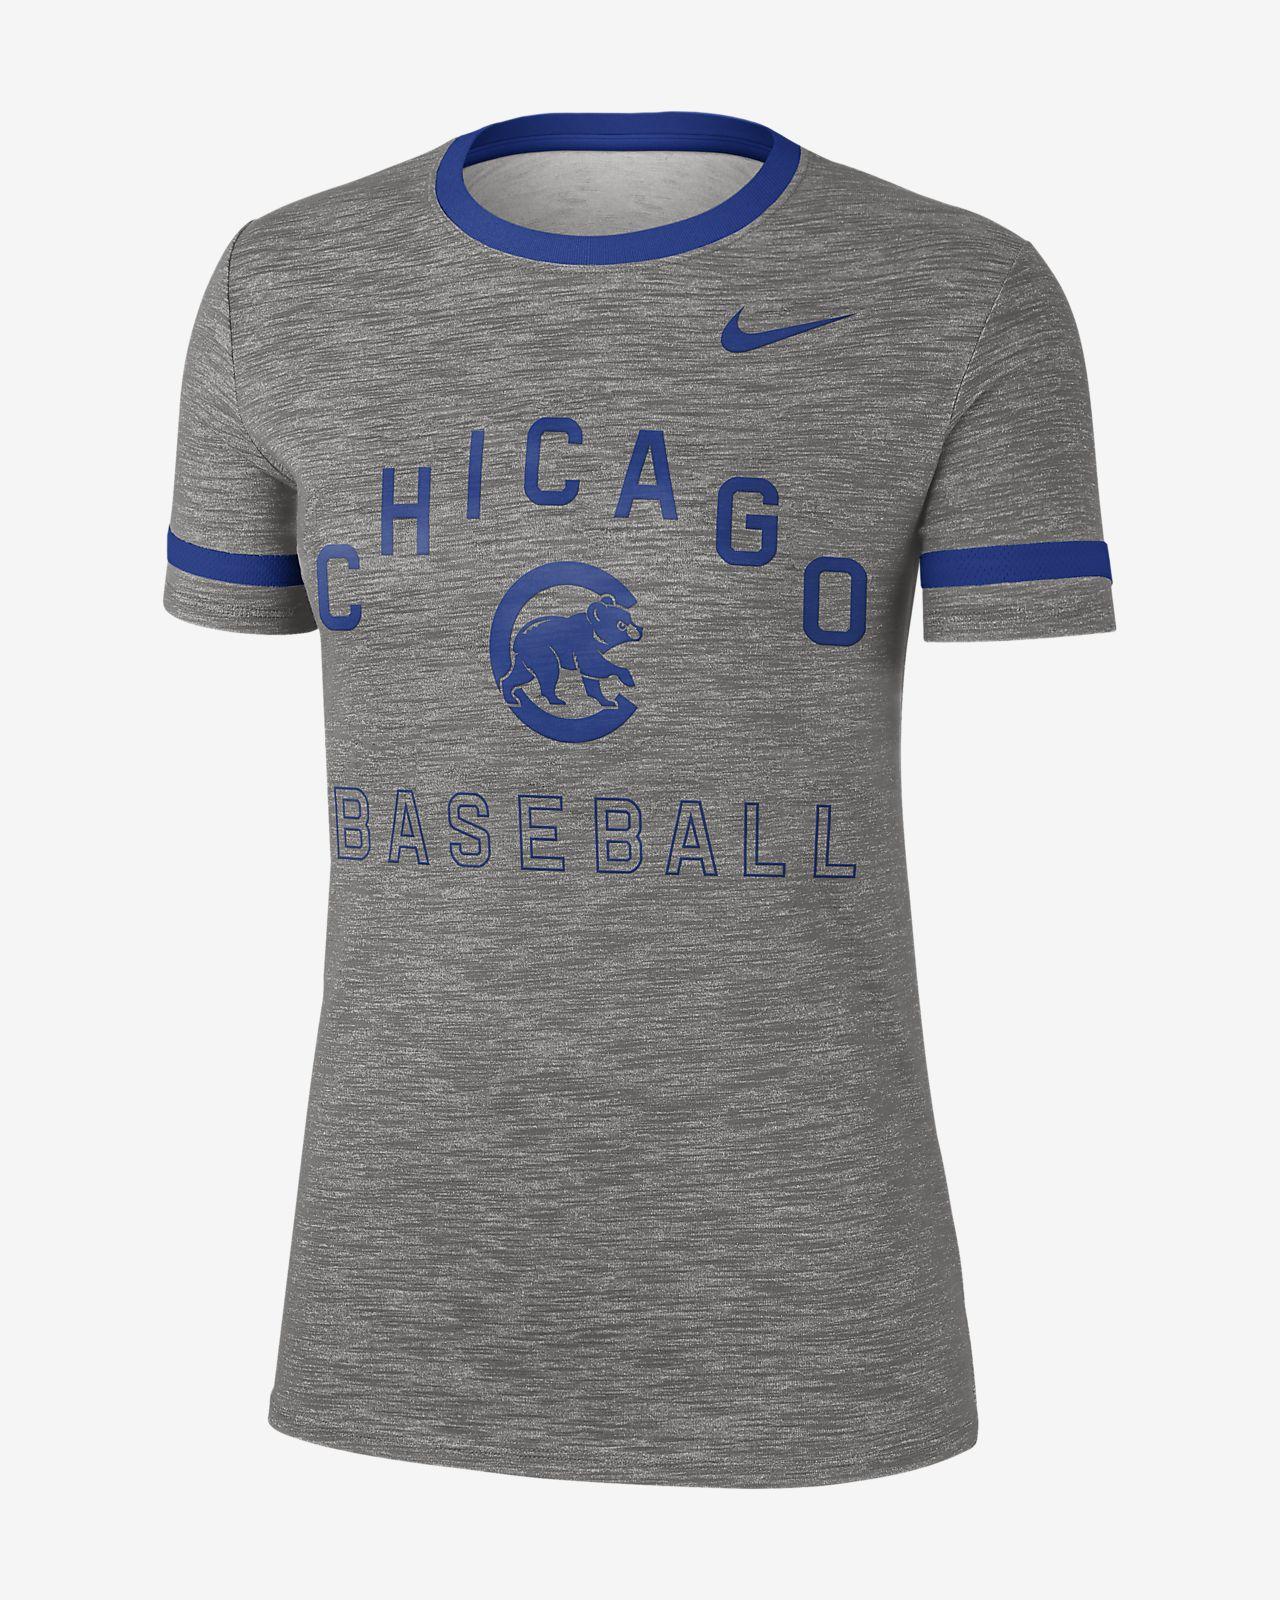 Women's T-Shirt. Nike Dri-FIT (MLB Cubs)